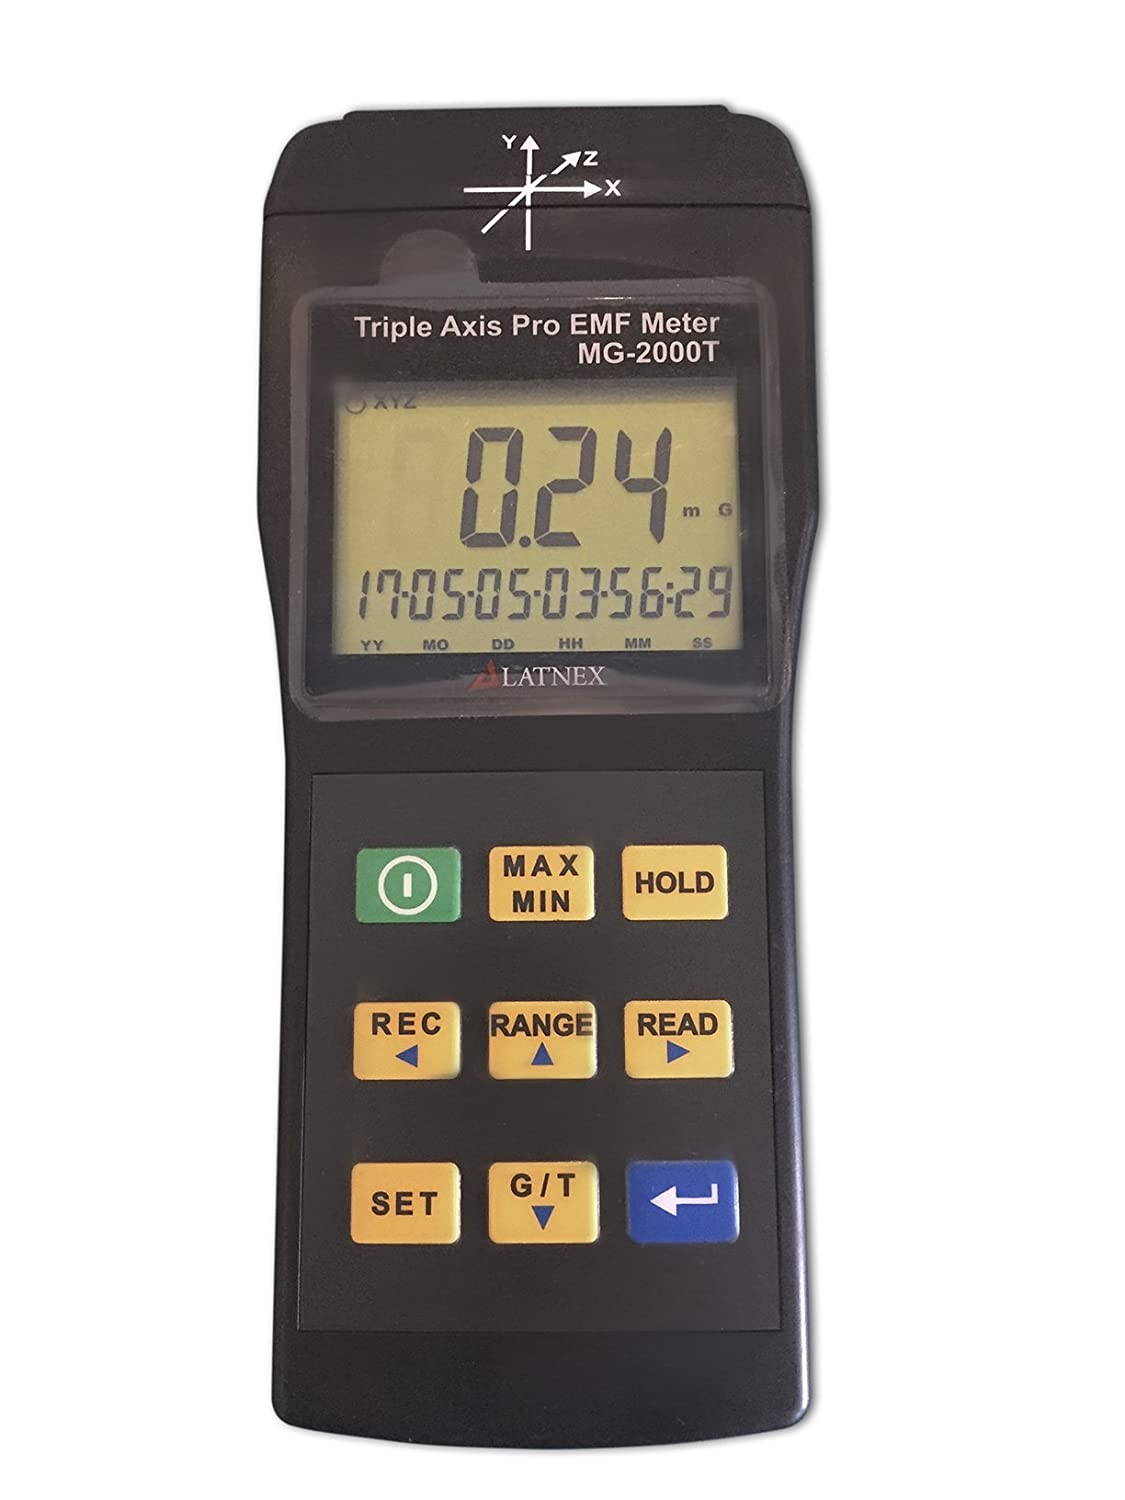 EMI Magnetic field gauss Meter detector MG-2000T Triple Axis Professional use Magnetic Interference from MRI Machines Industrial and Medical Equipment Power Lines Appliances EMF inspections